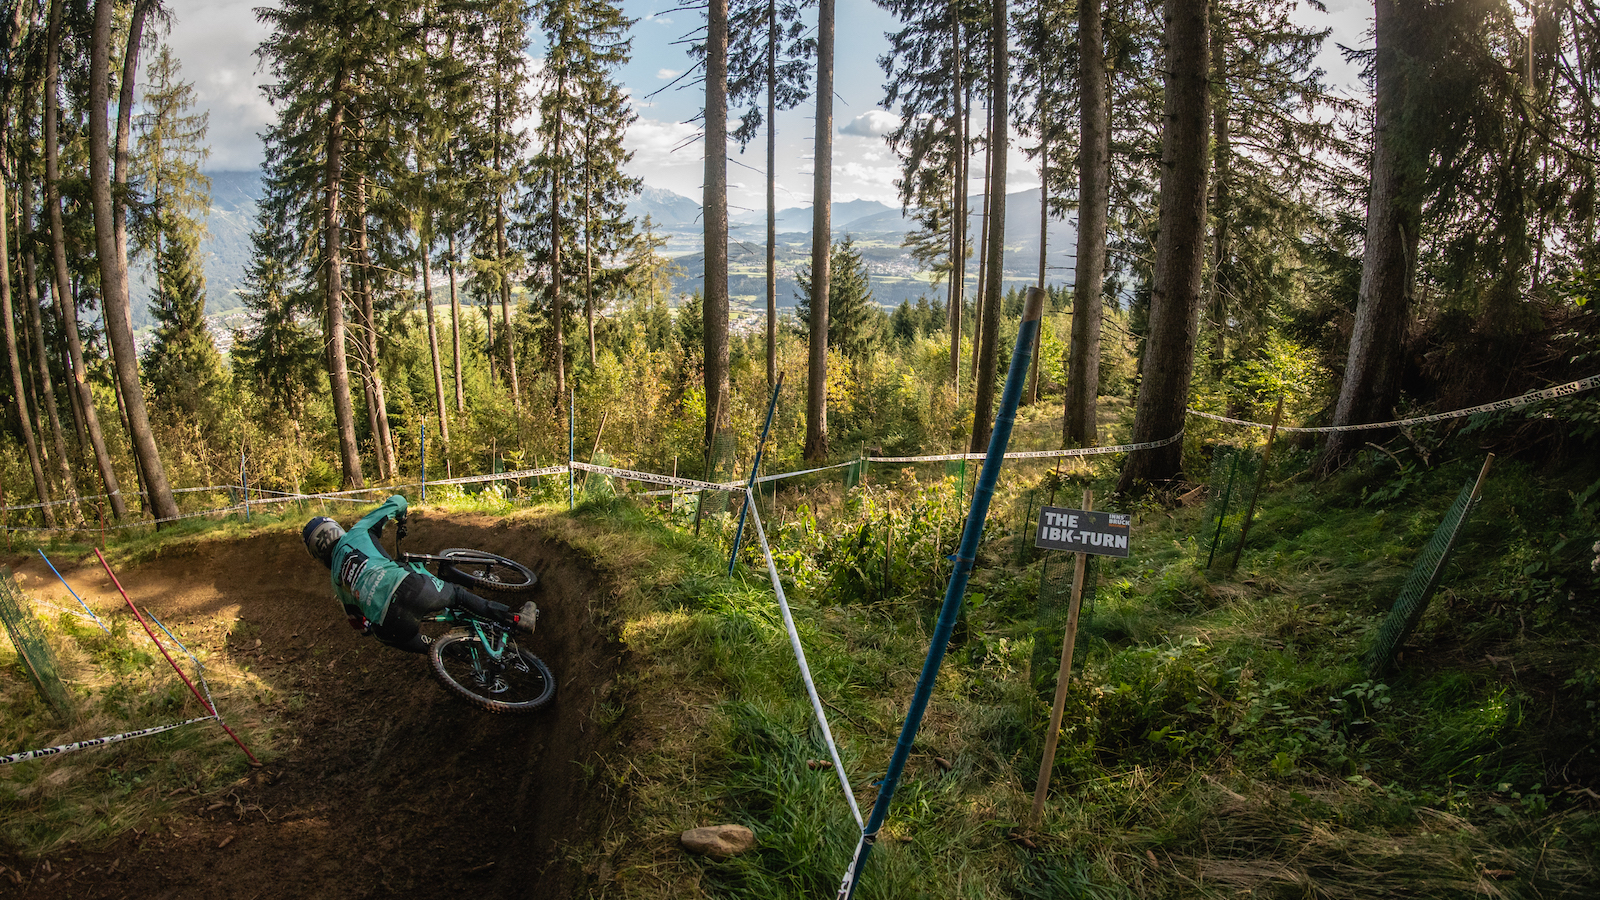 How to ride berms: navigate banked turns successfully